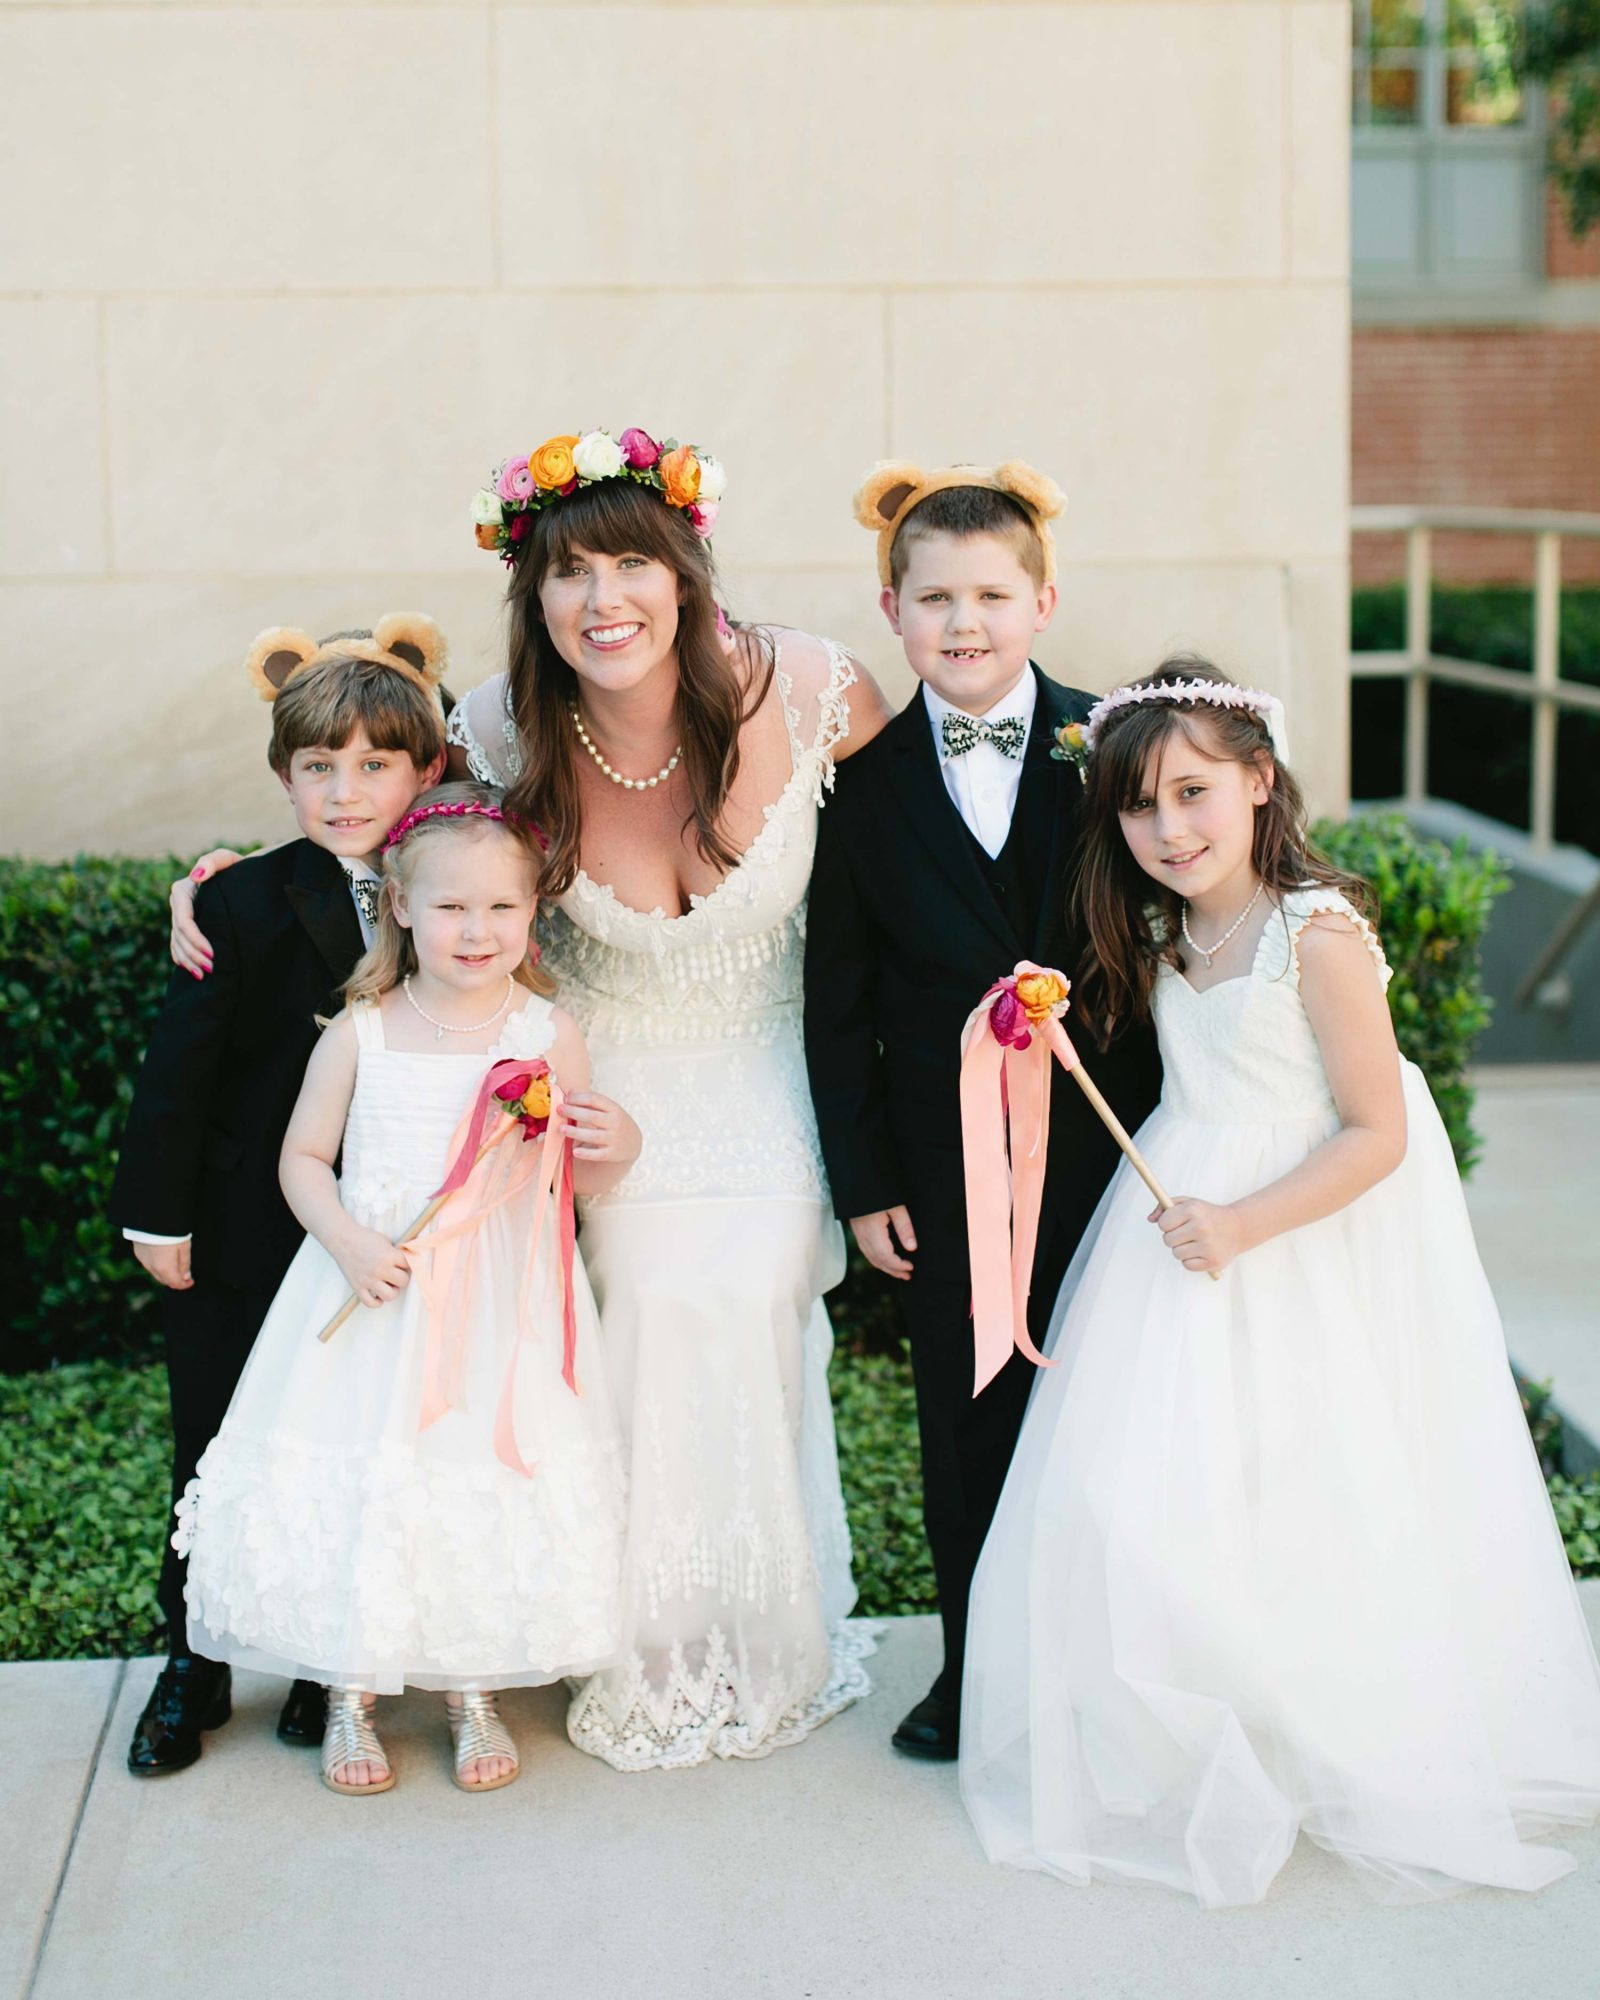 The Flower Girls and Ring  Bears